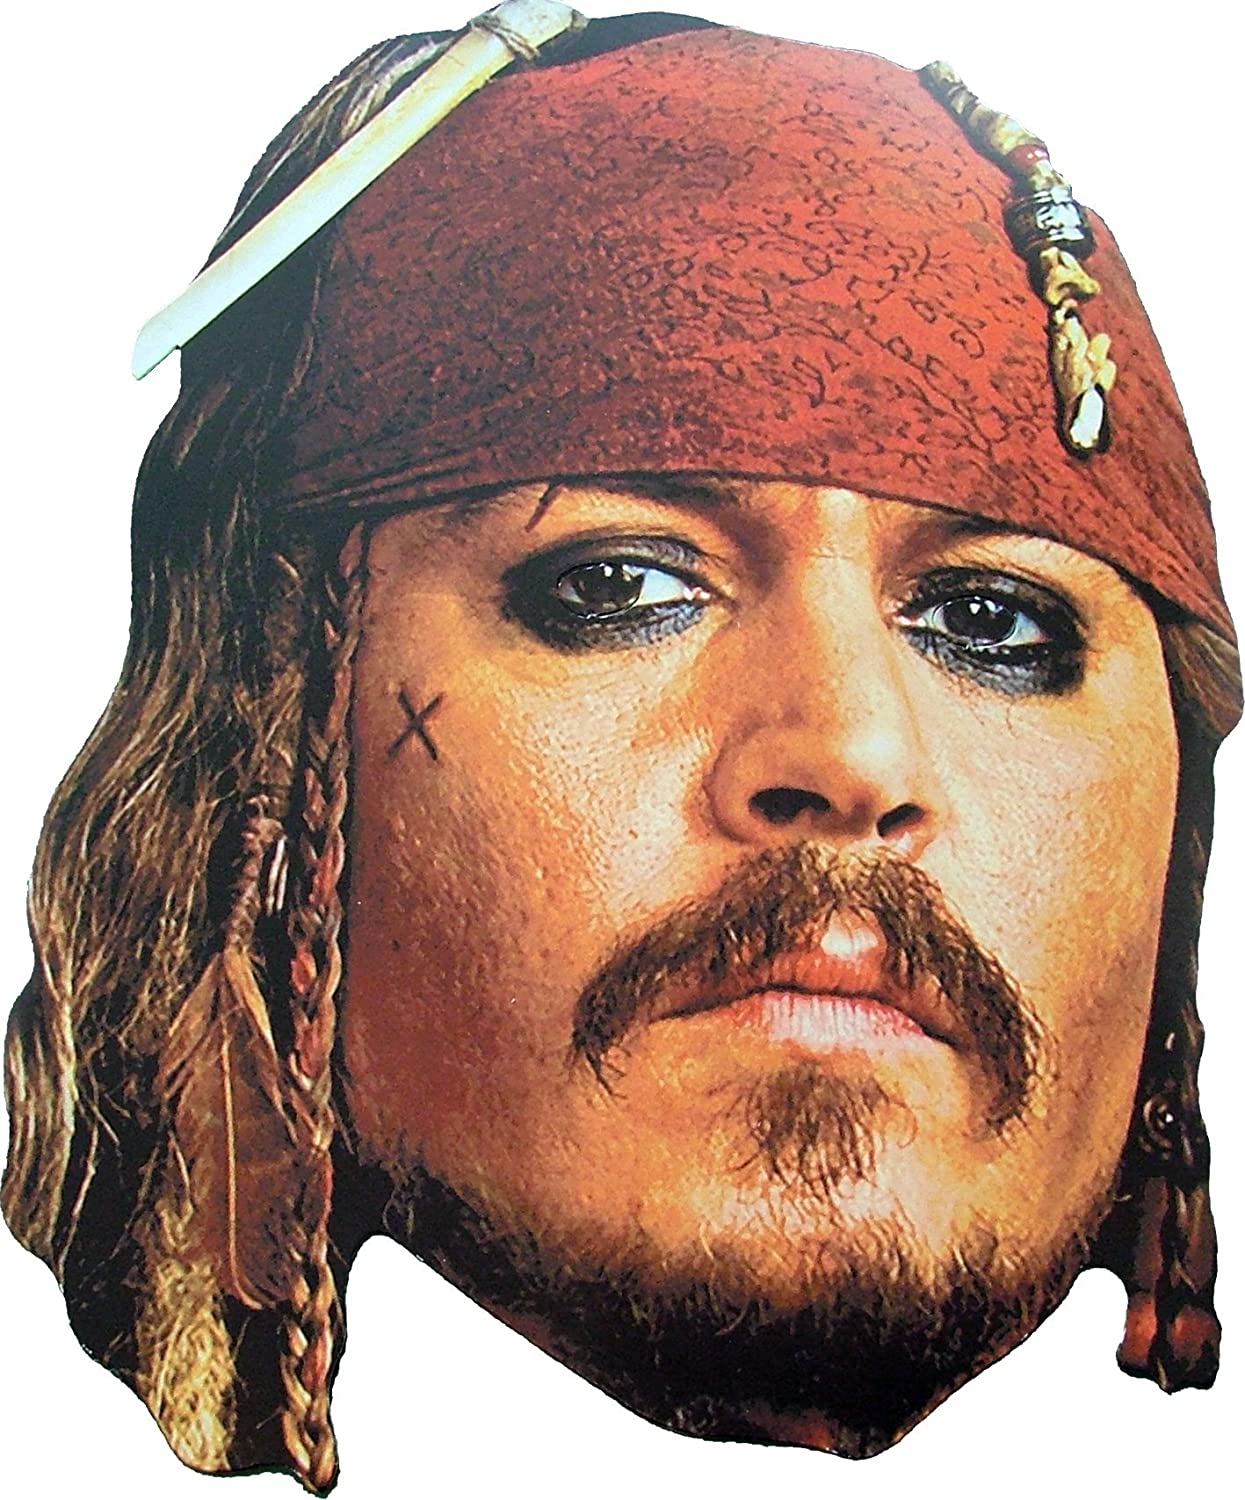 Face Jack Card esJuguetes Captain Sparrow MaskAmazon g6Y7Ifybv